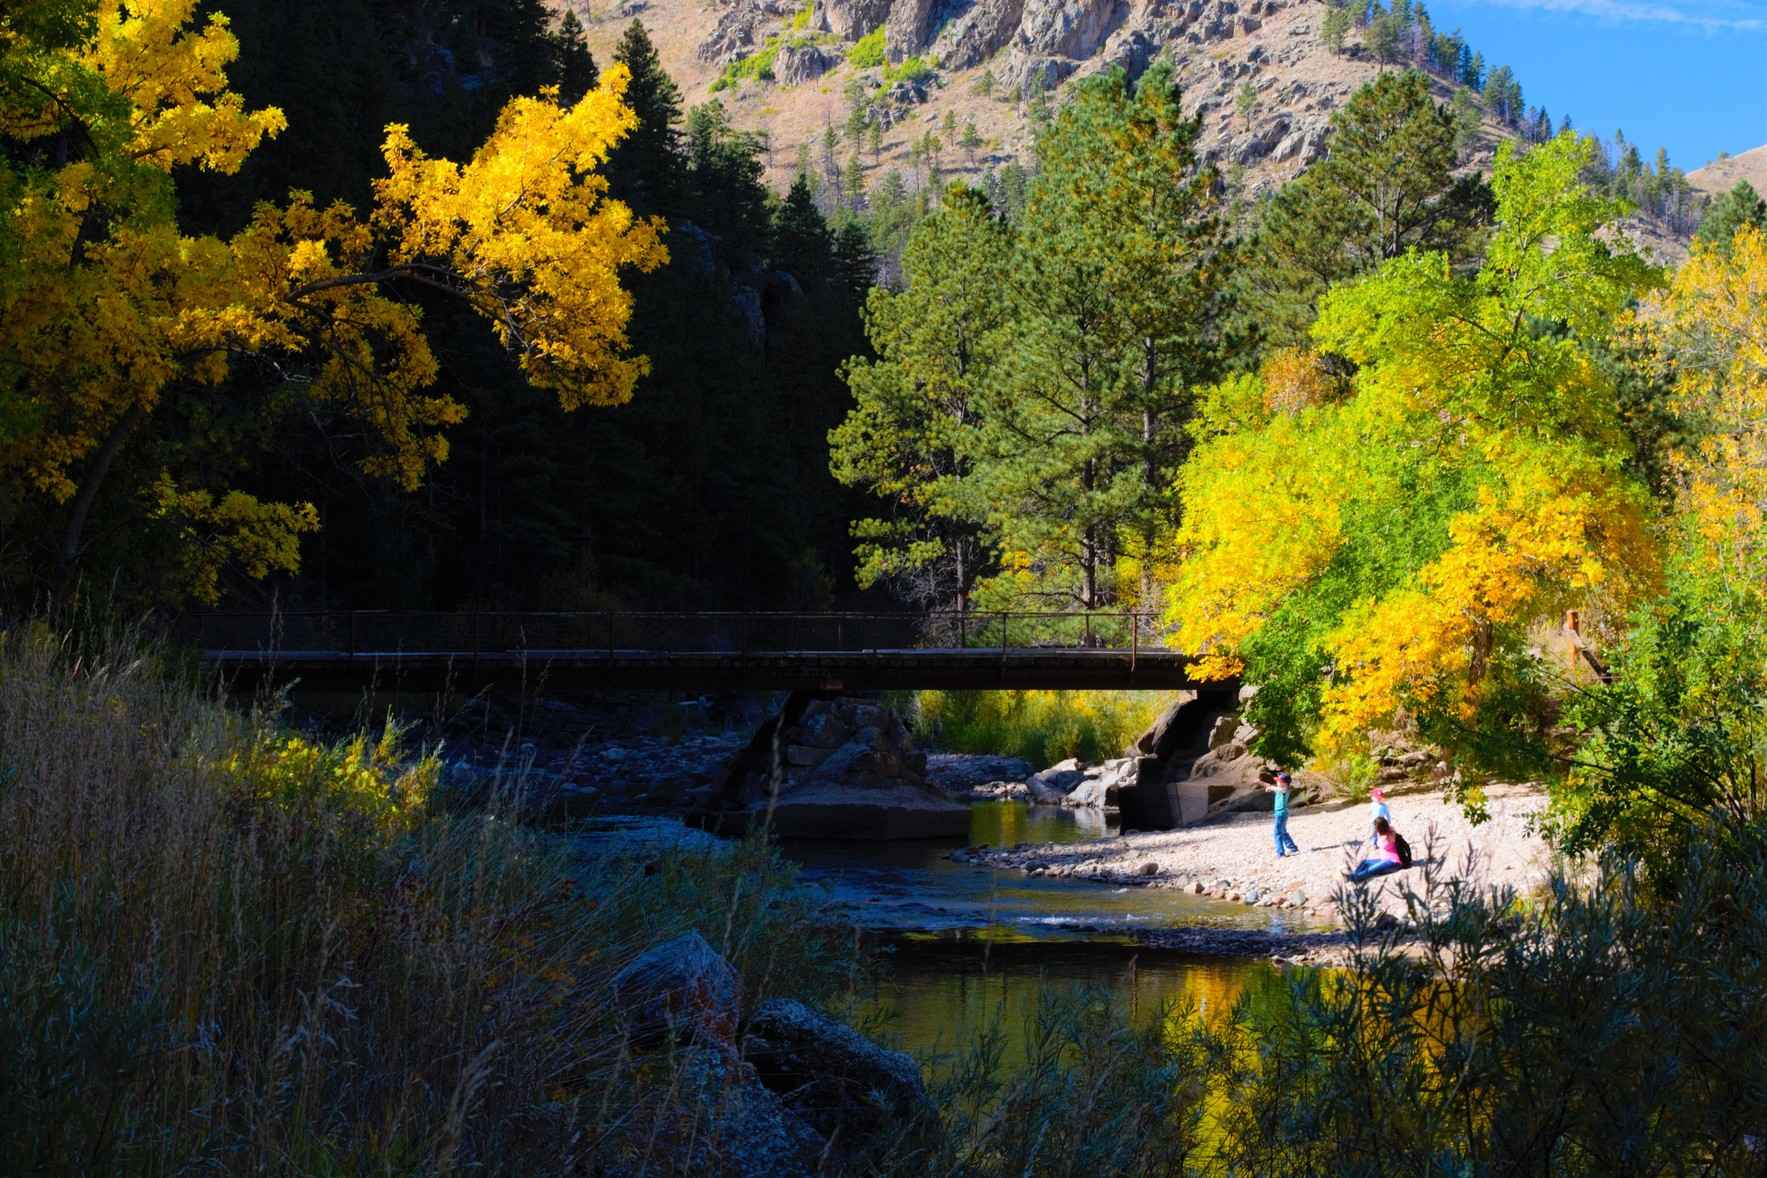 Give today to restore the Poudre image